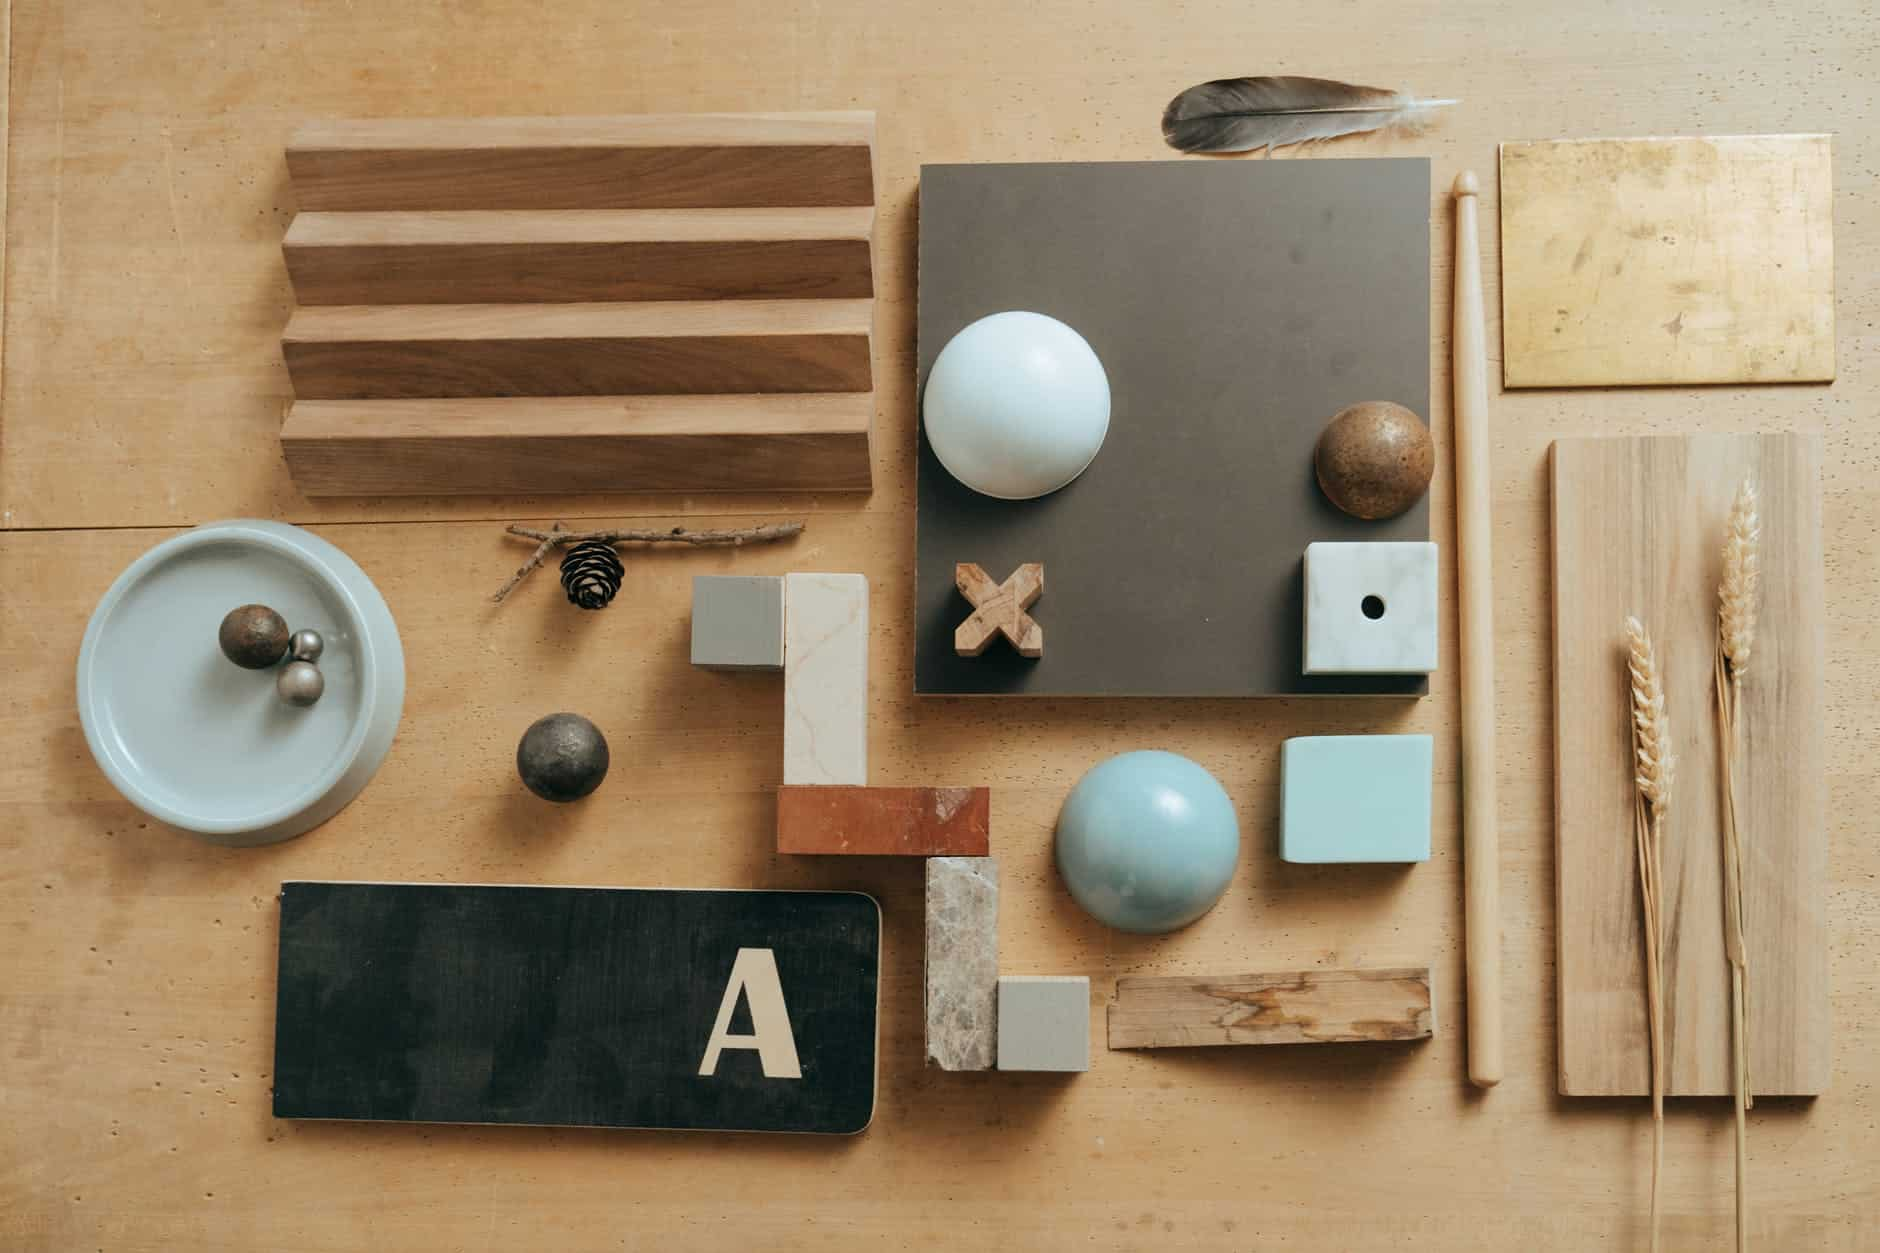 products made of wood